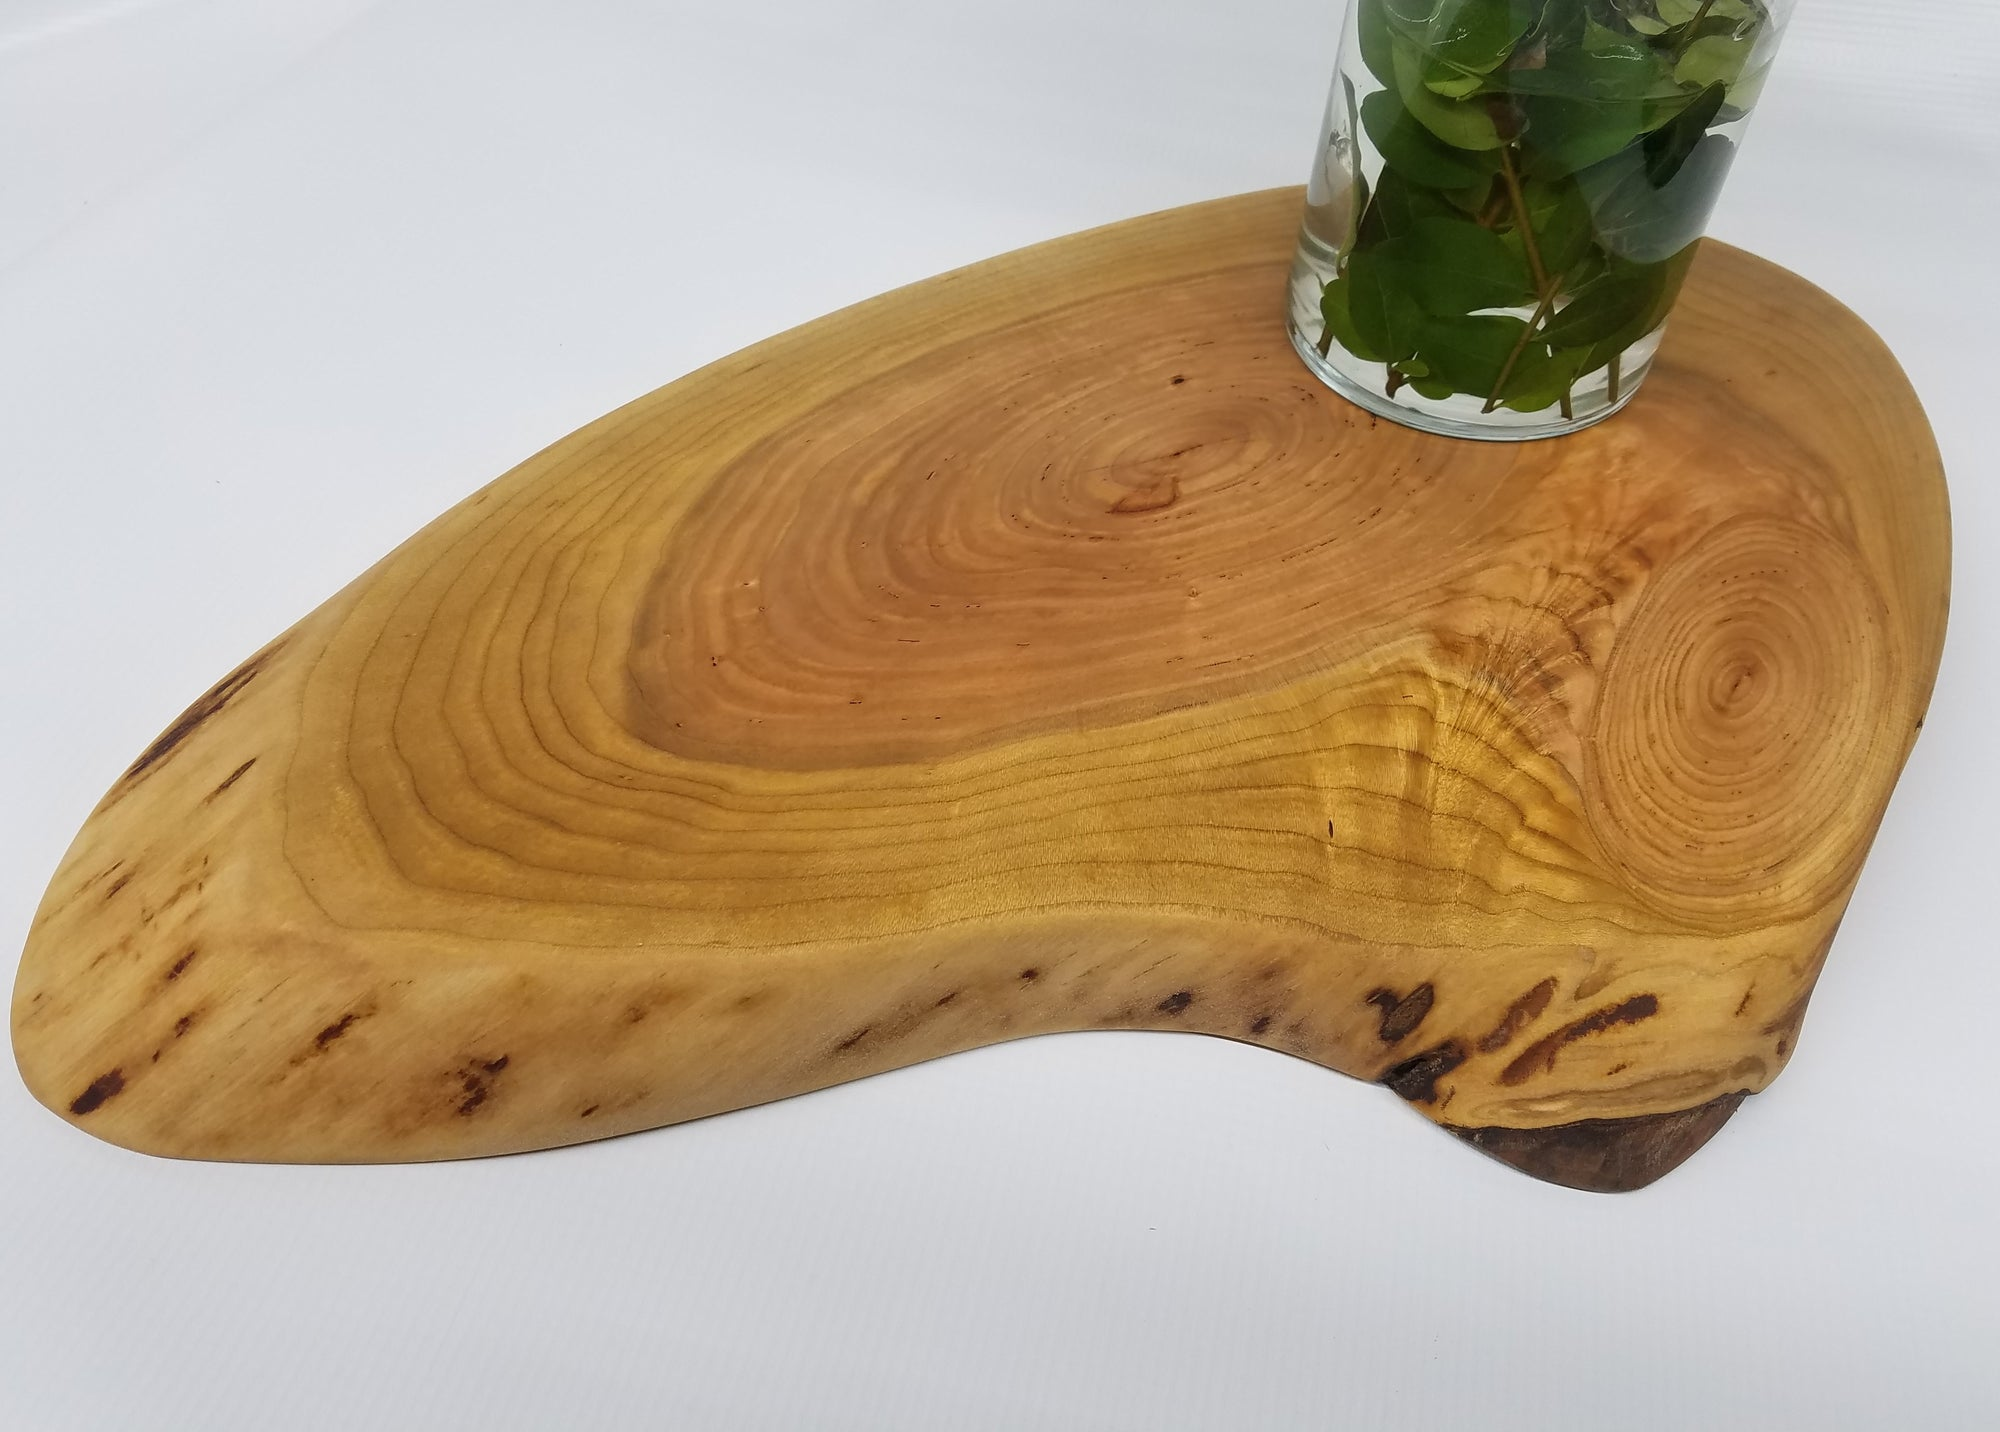 Wooden Charcuterie Board- Table Centerpiece- Crosscut Slab- Natural Wood- Serving Board- Food Safe- Live Edge Slab- Cherry- Christmas Gift